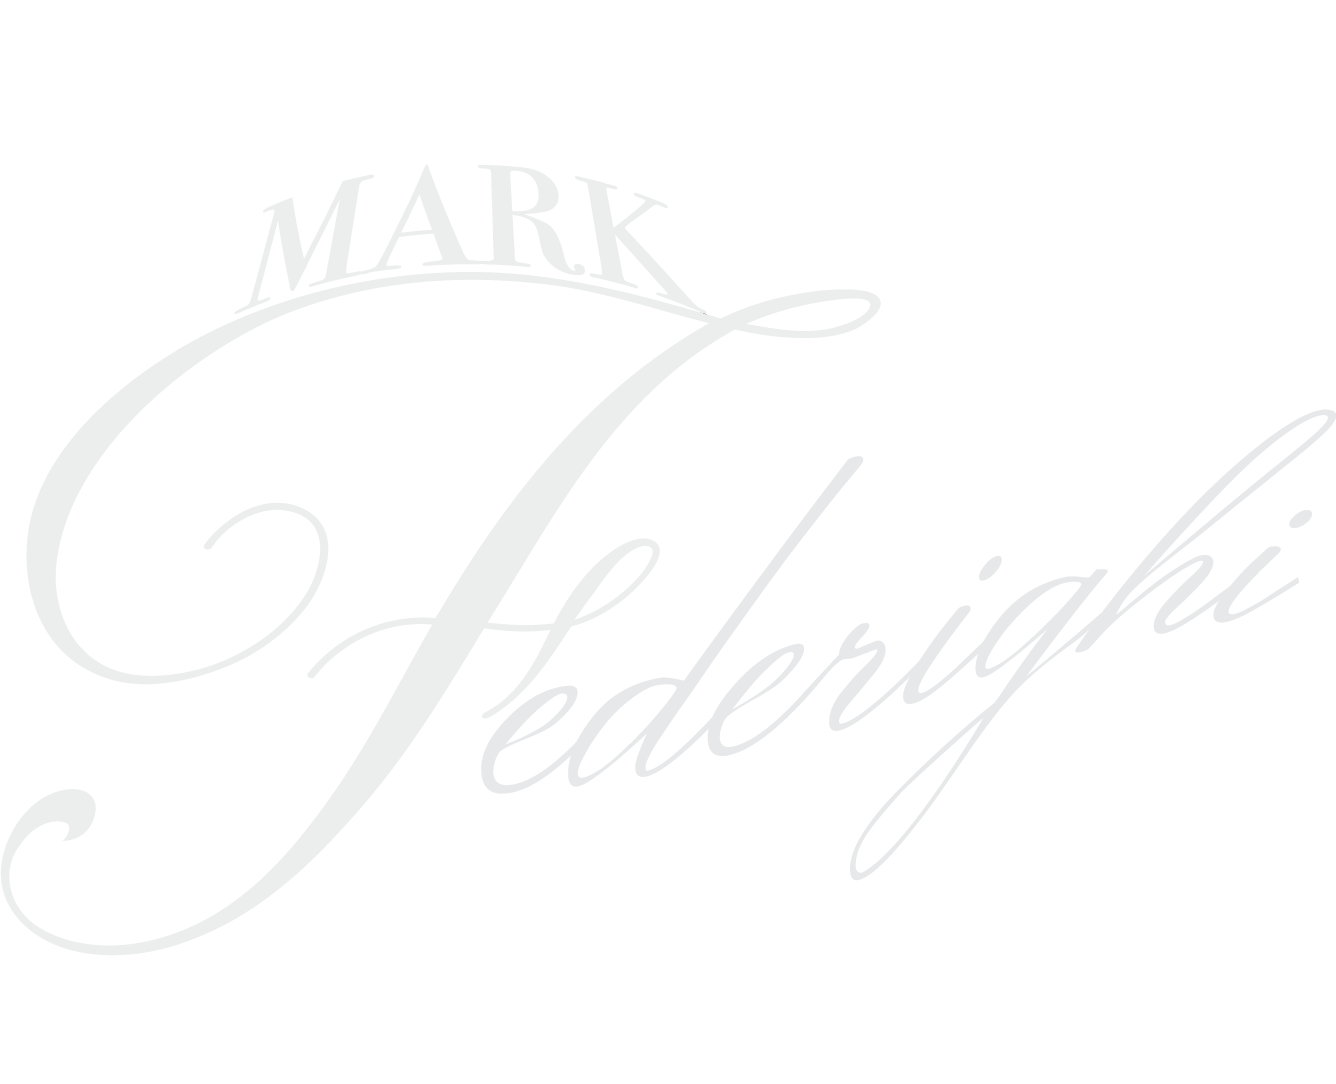 Mark Federighi - Portland, Oregon based Wedding Photographer